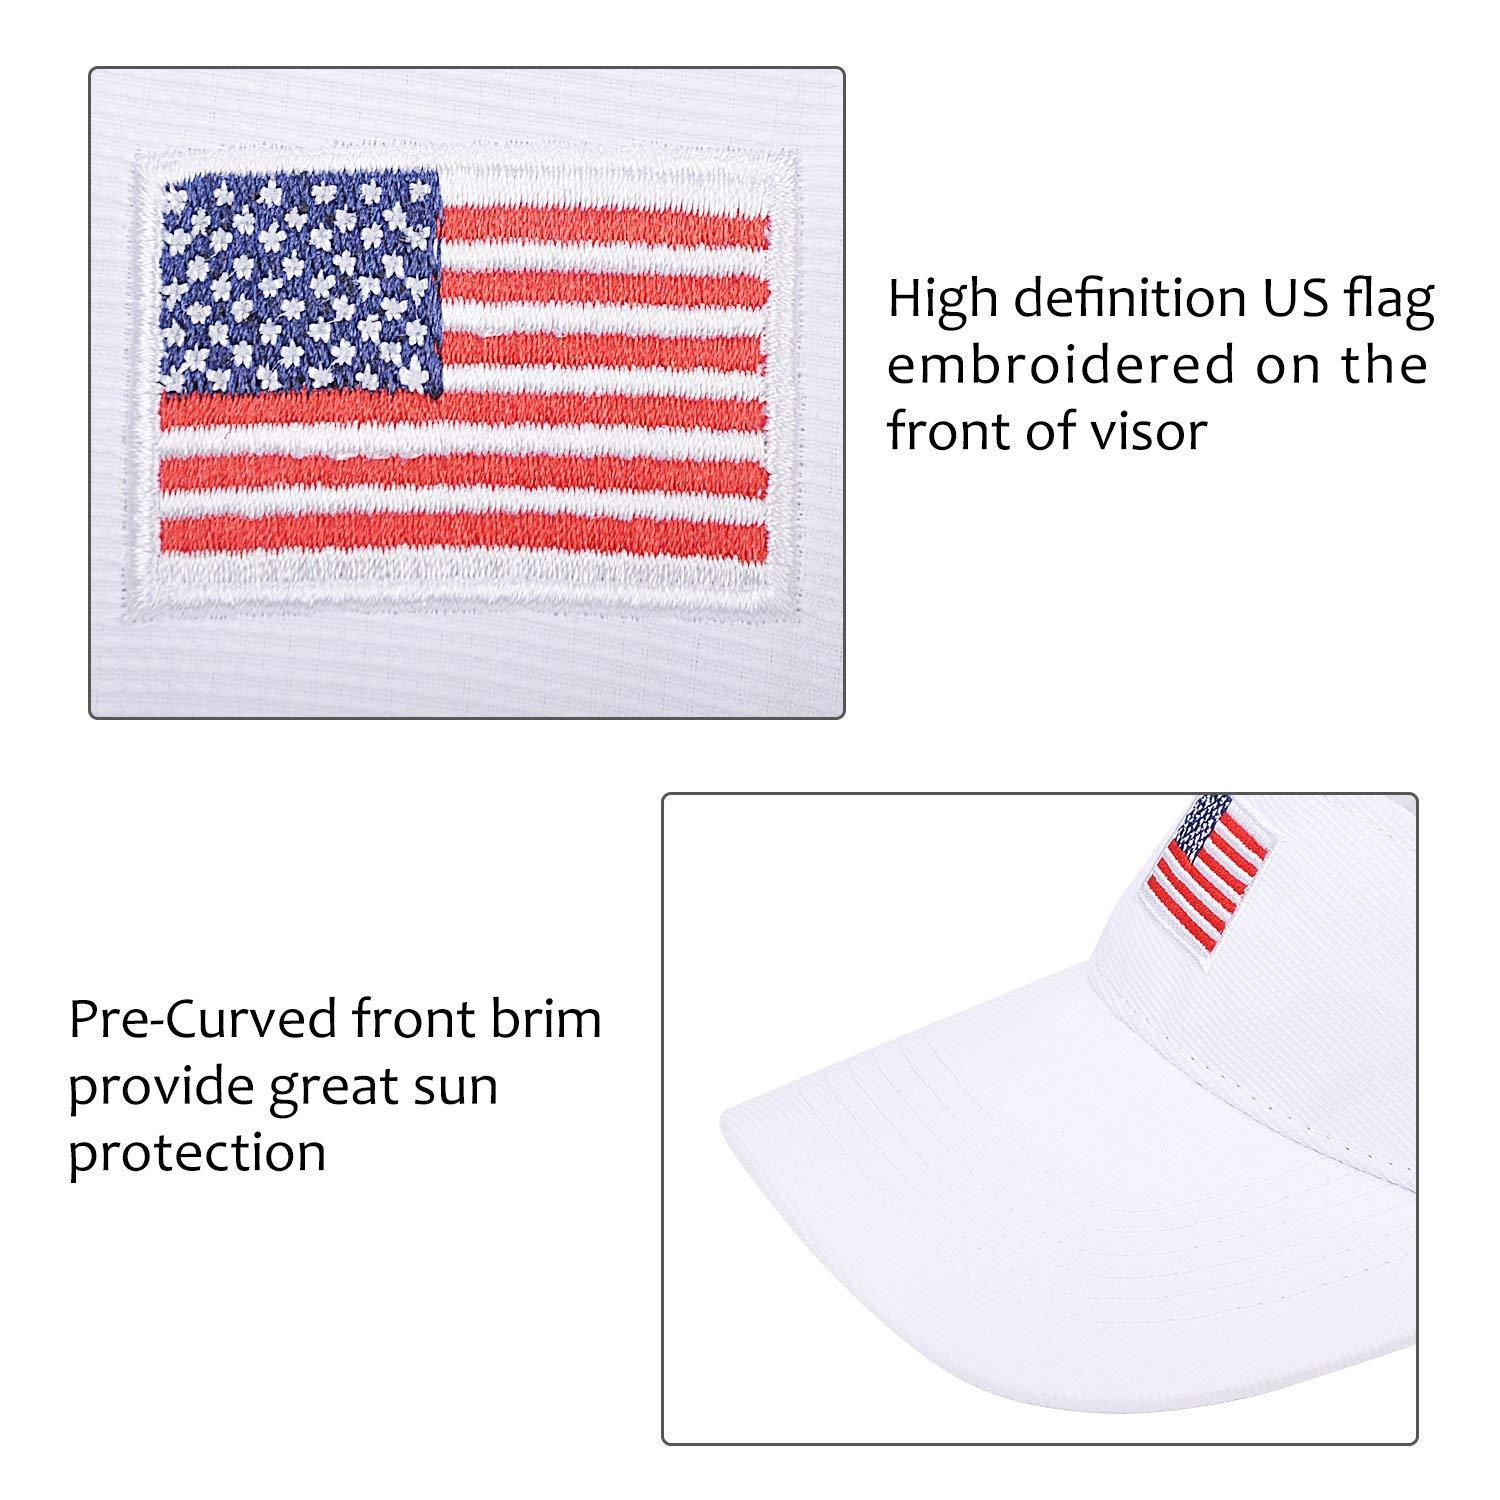 3619b064bc2 American Flag Sun Visor Adjule Cap And 32 Similar Items. Enimay Sports  Tennis Golf Sun Visor Hats Adjule Velcro Plain Bright Colors ...